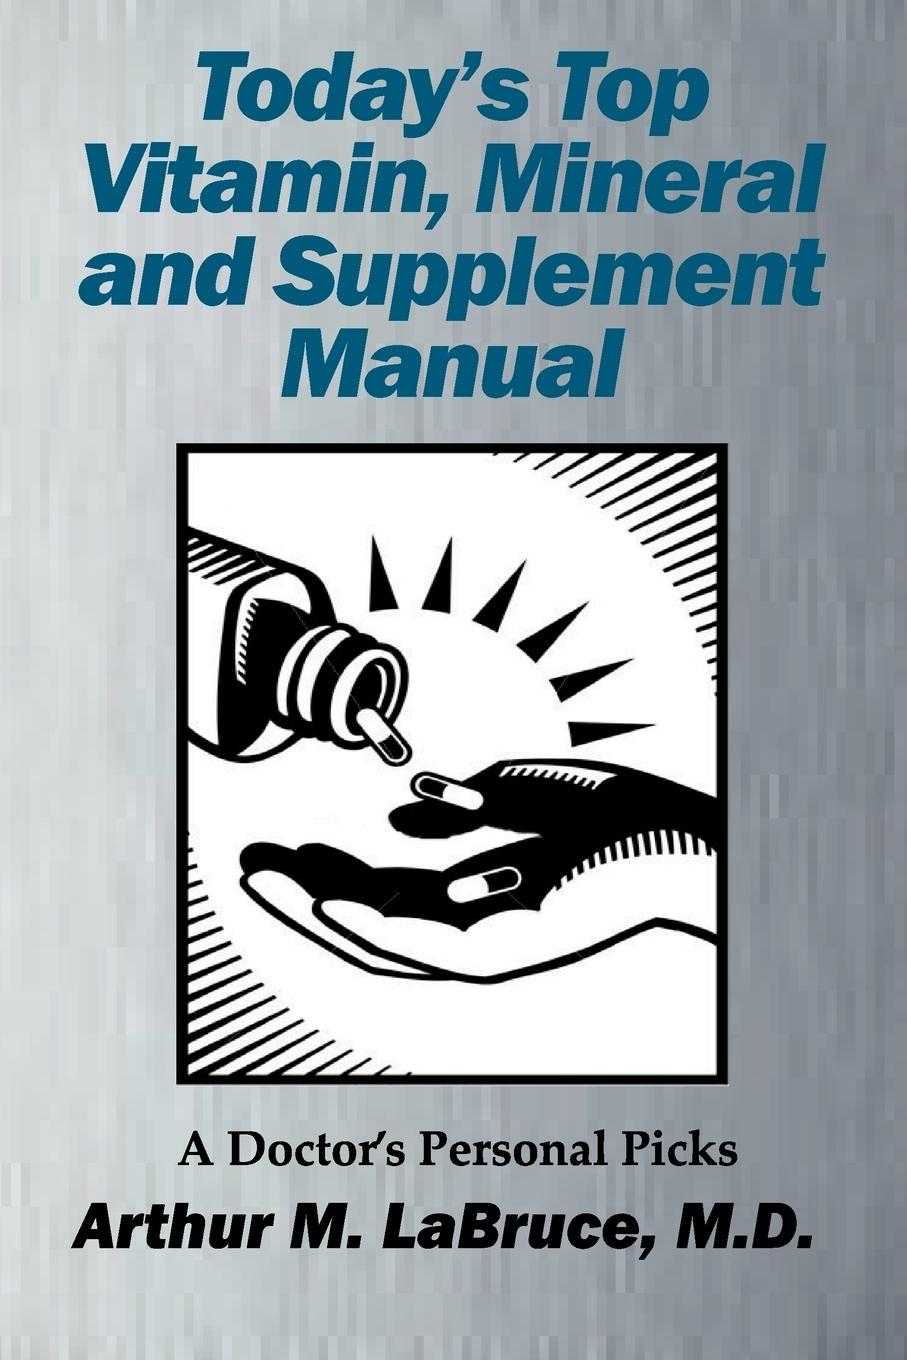 Today's Top Vitamin, Mineral and Supplement Manual  A Doctor's Personal Picks  Arthur Labruce  Taschenbuch  Paperback  Englisch  2011 - Labruce, Arthur